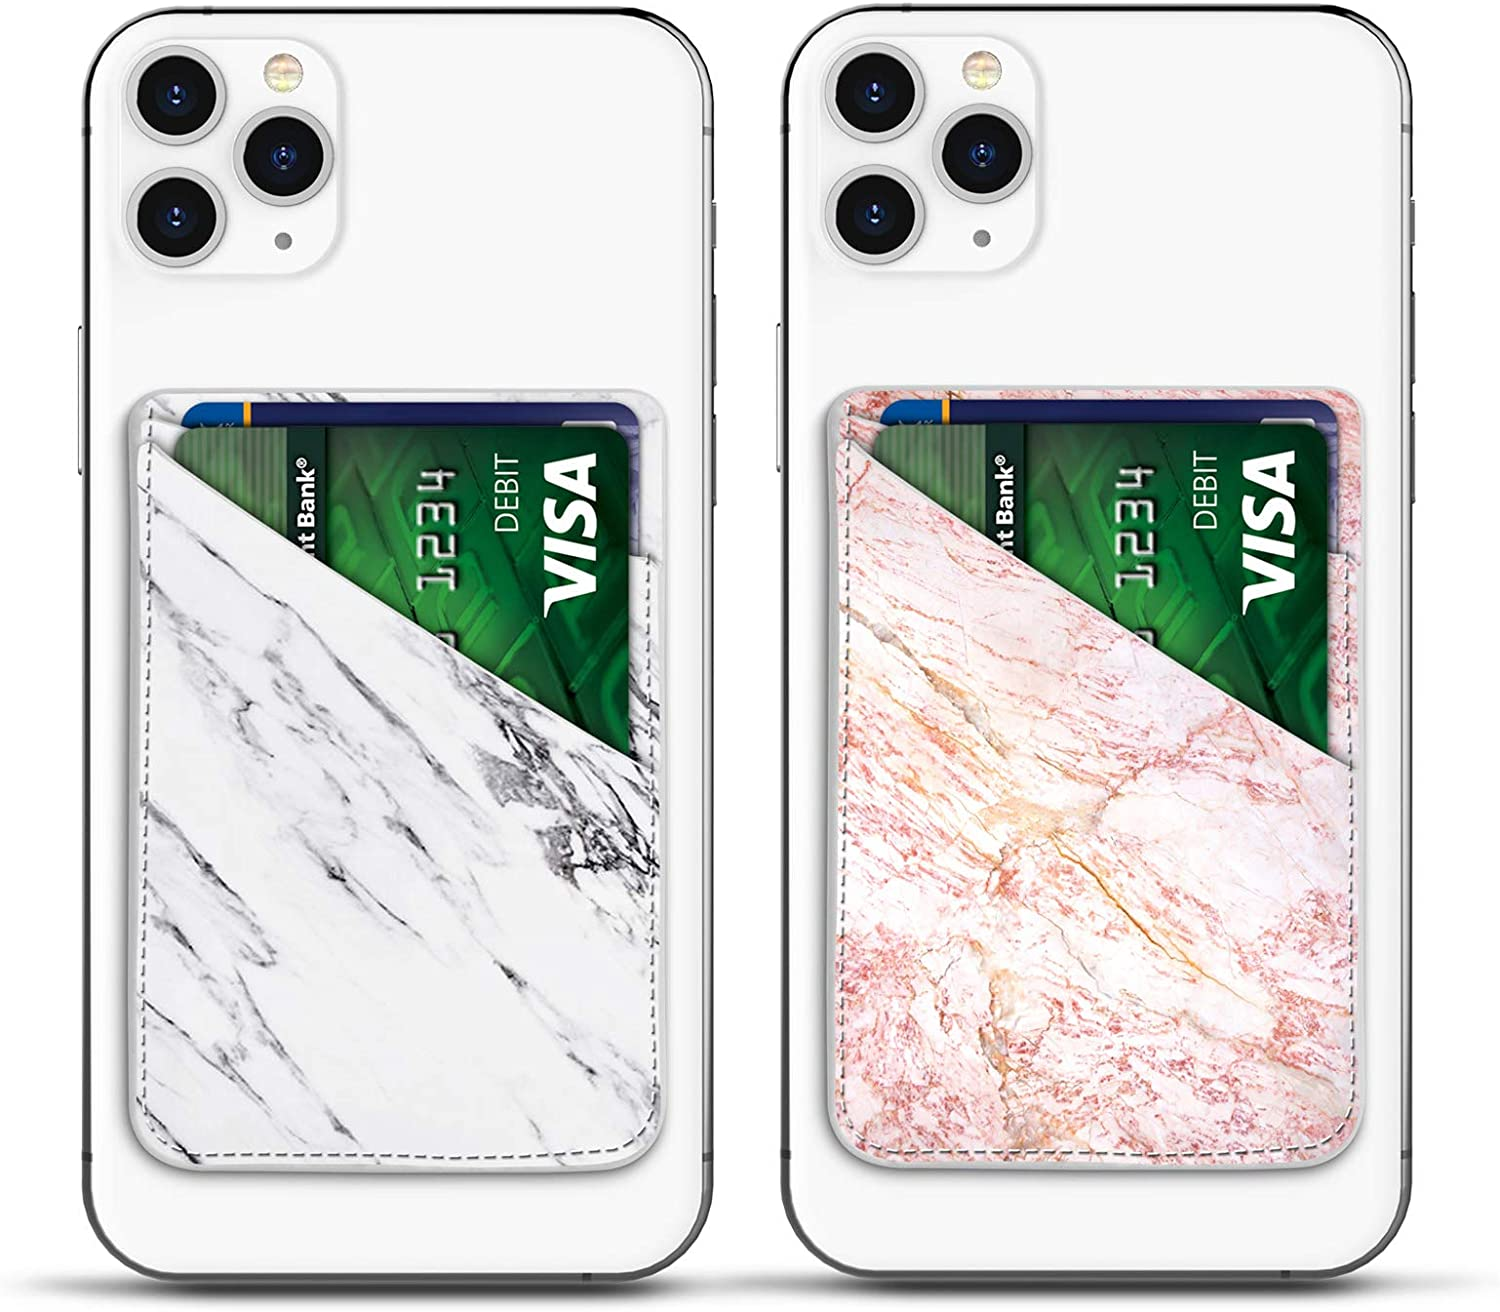 Njjex 2 Pack Marble Phone Card Holder for Back of Phone, PU Leather ID Credit Card Wallet Cover Case Pouch Sleeve Pocket 3M Adhesive Stick on iPhone Samsung Galaxy LG Motorola Android Smartphones